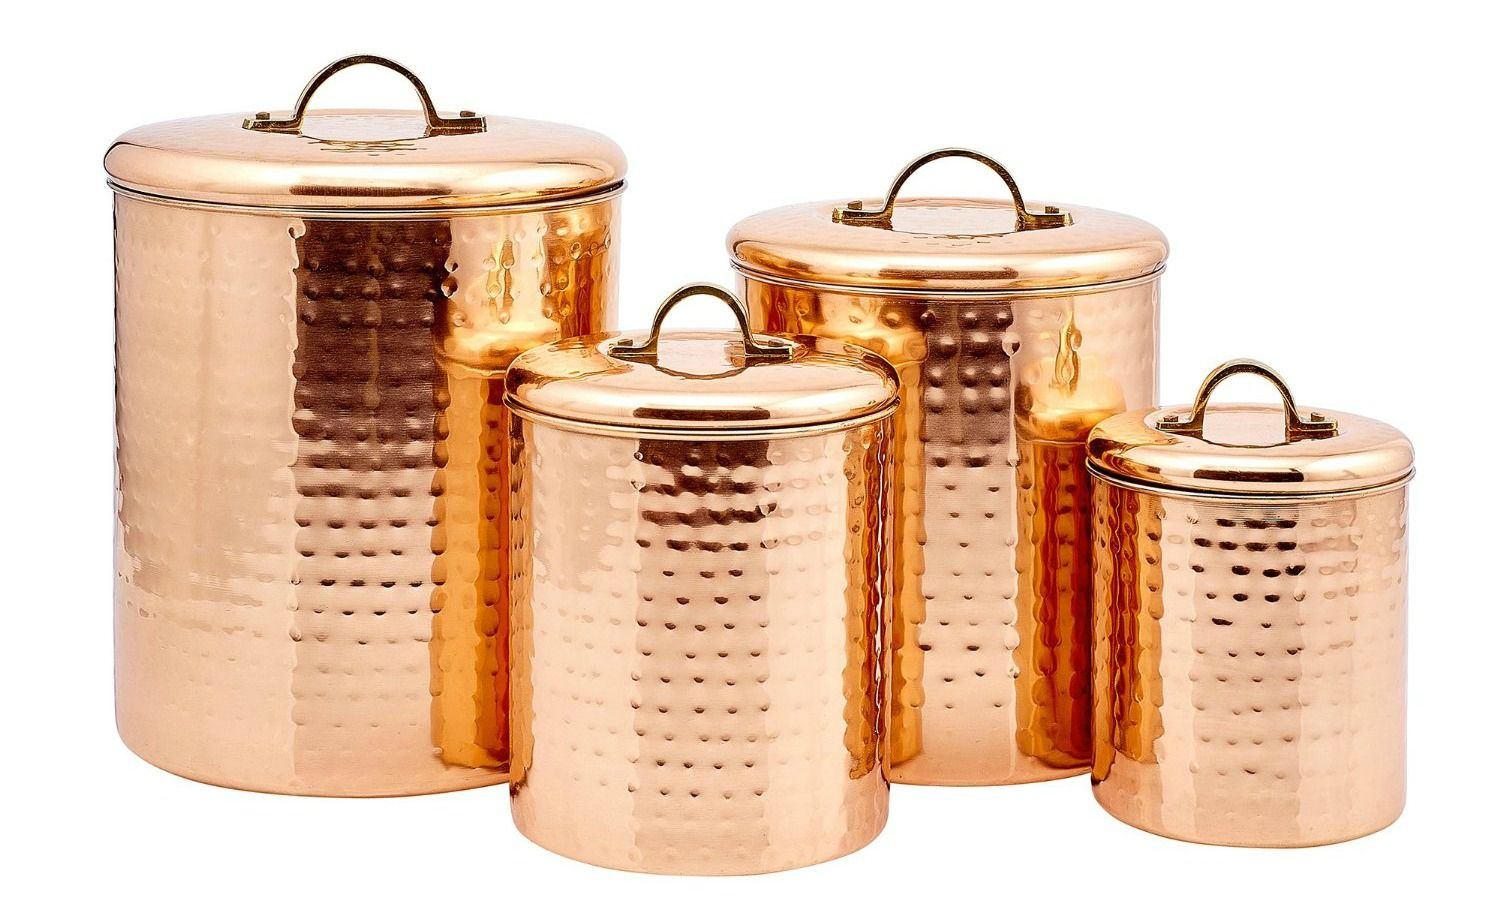 Copper Kitchen Decor   These Is The Ultimate Copper Kitchen Guide.  Everything You Need To